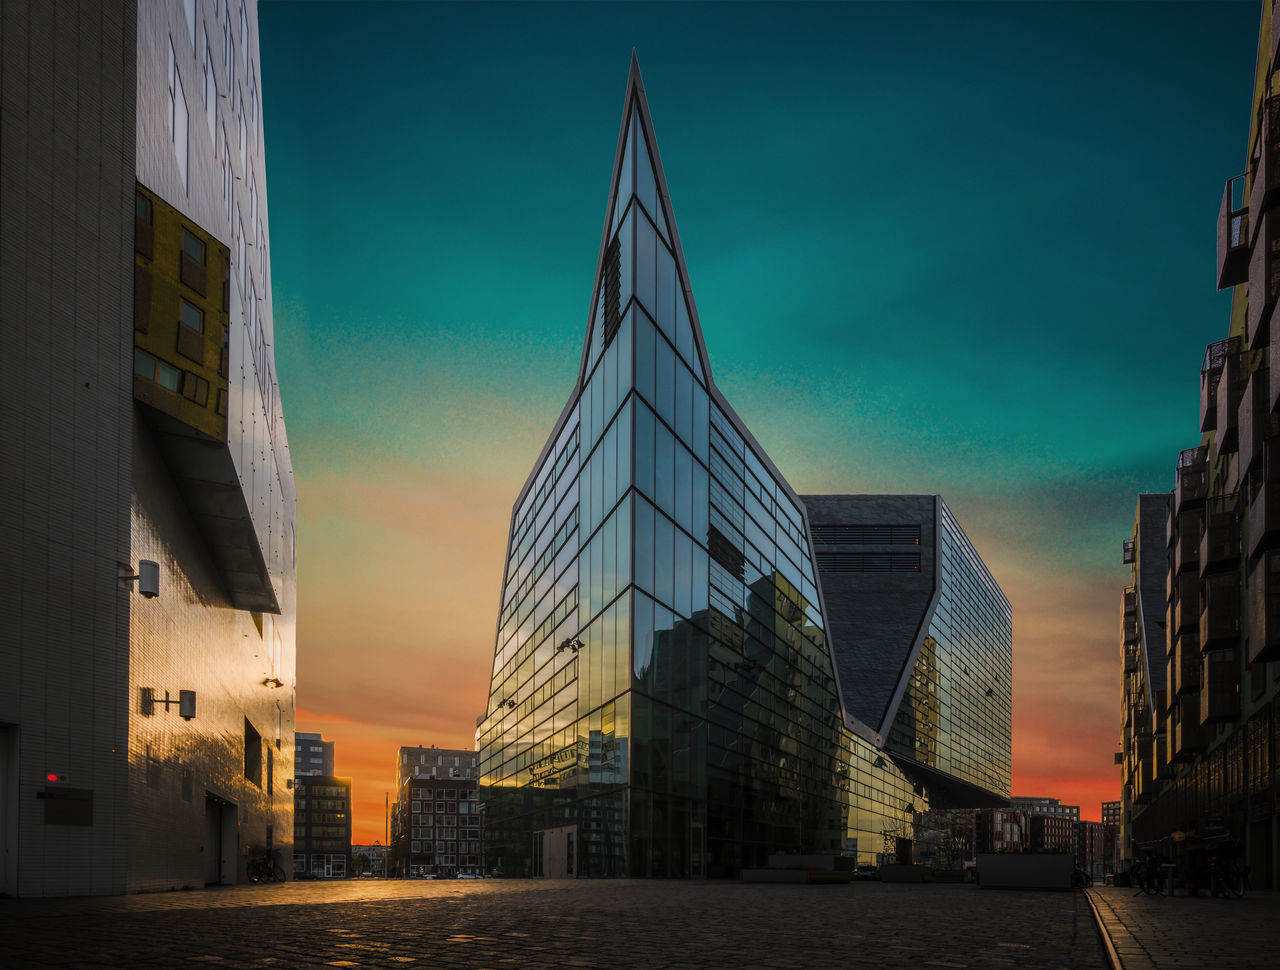 architecture, building exterior, built structure, sky, city, skyscraper, outdoors, sunset, no people, modern, day